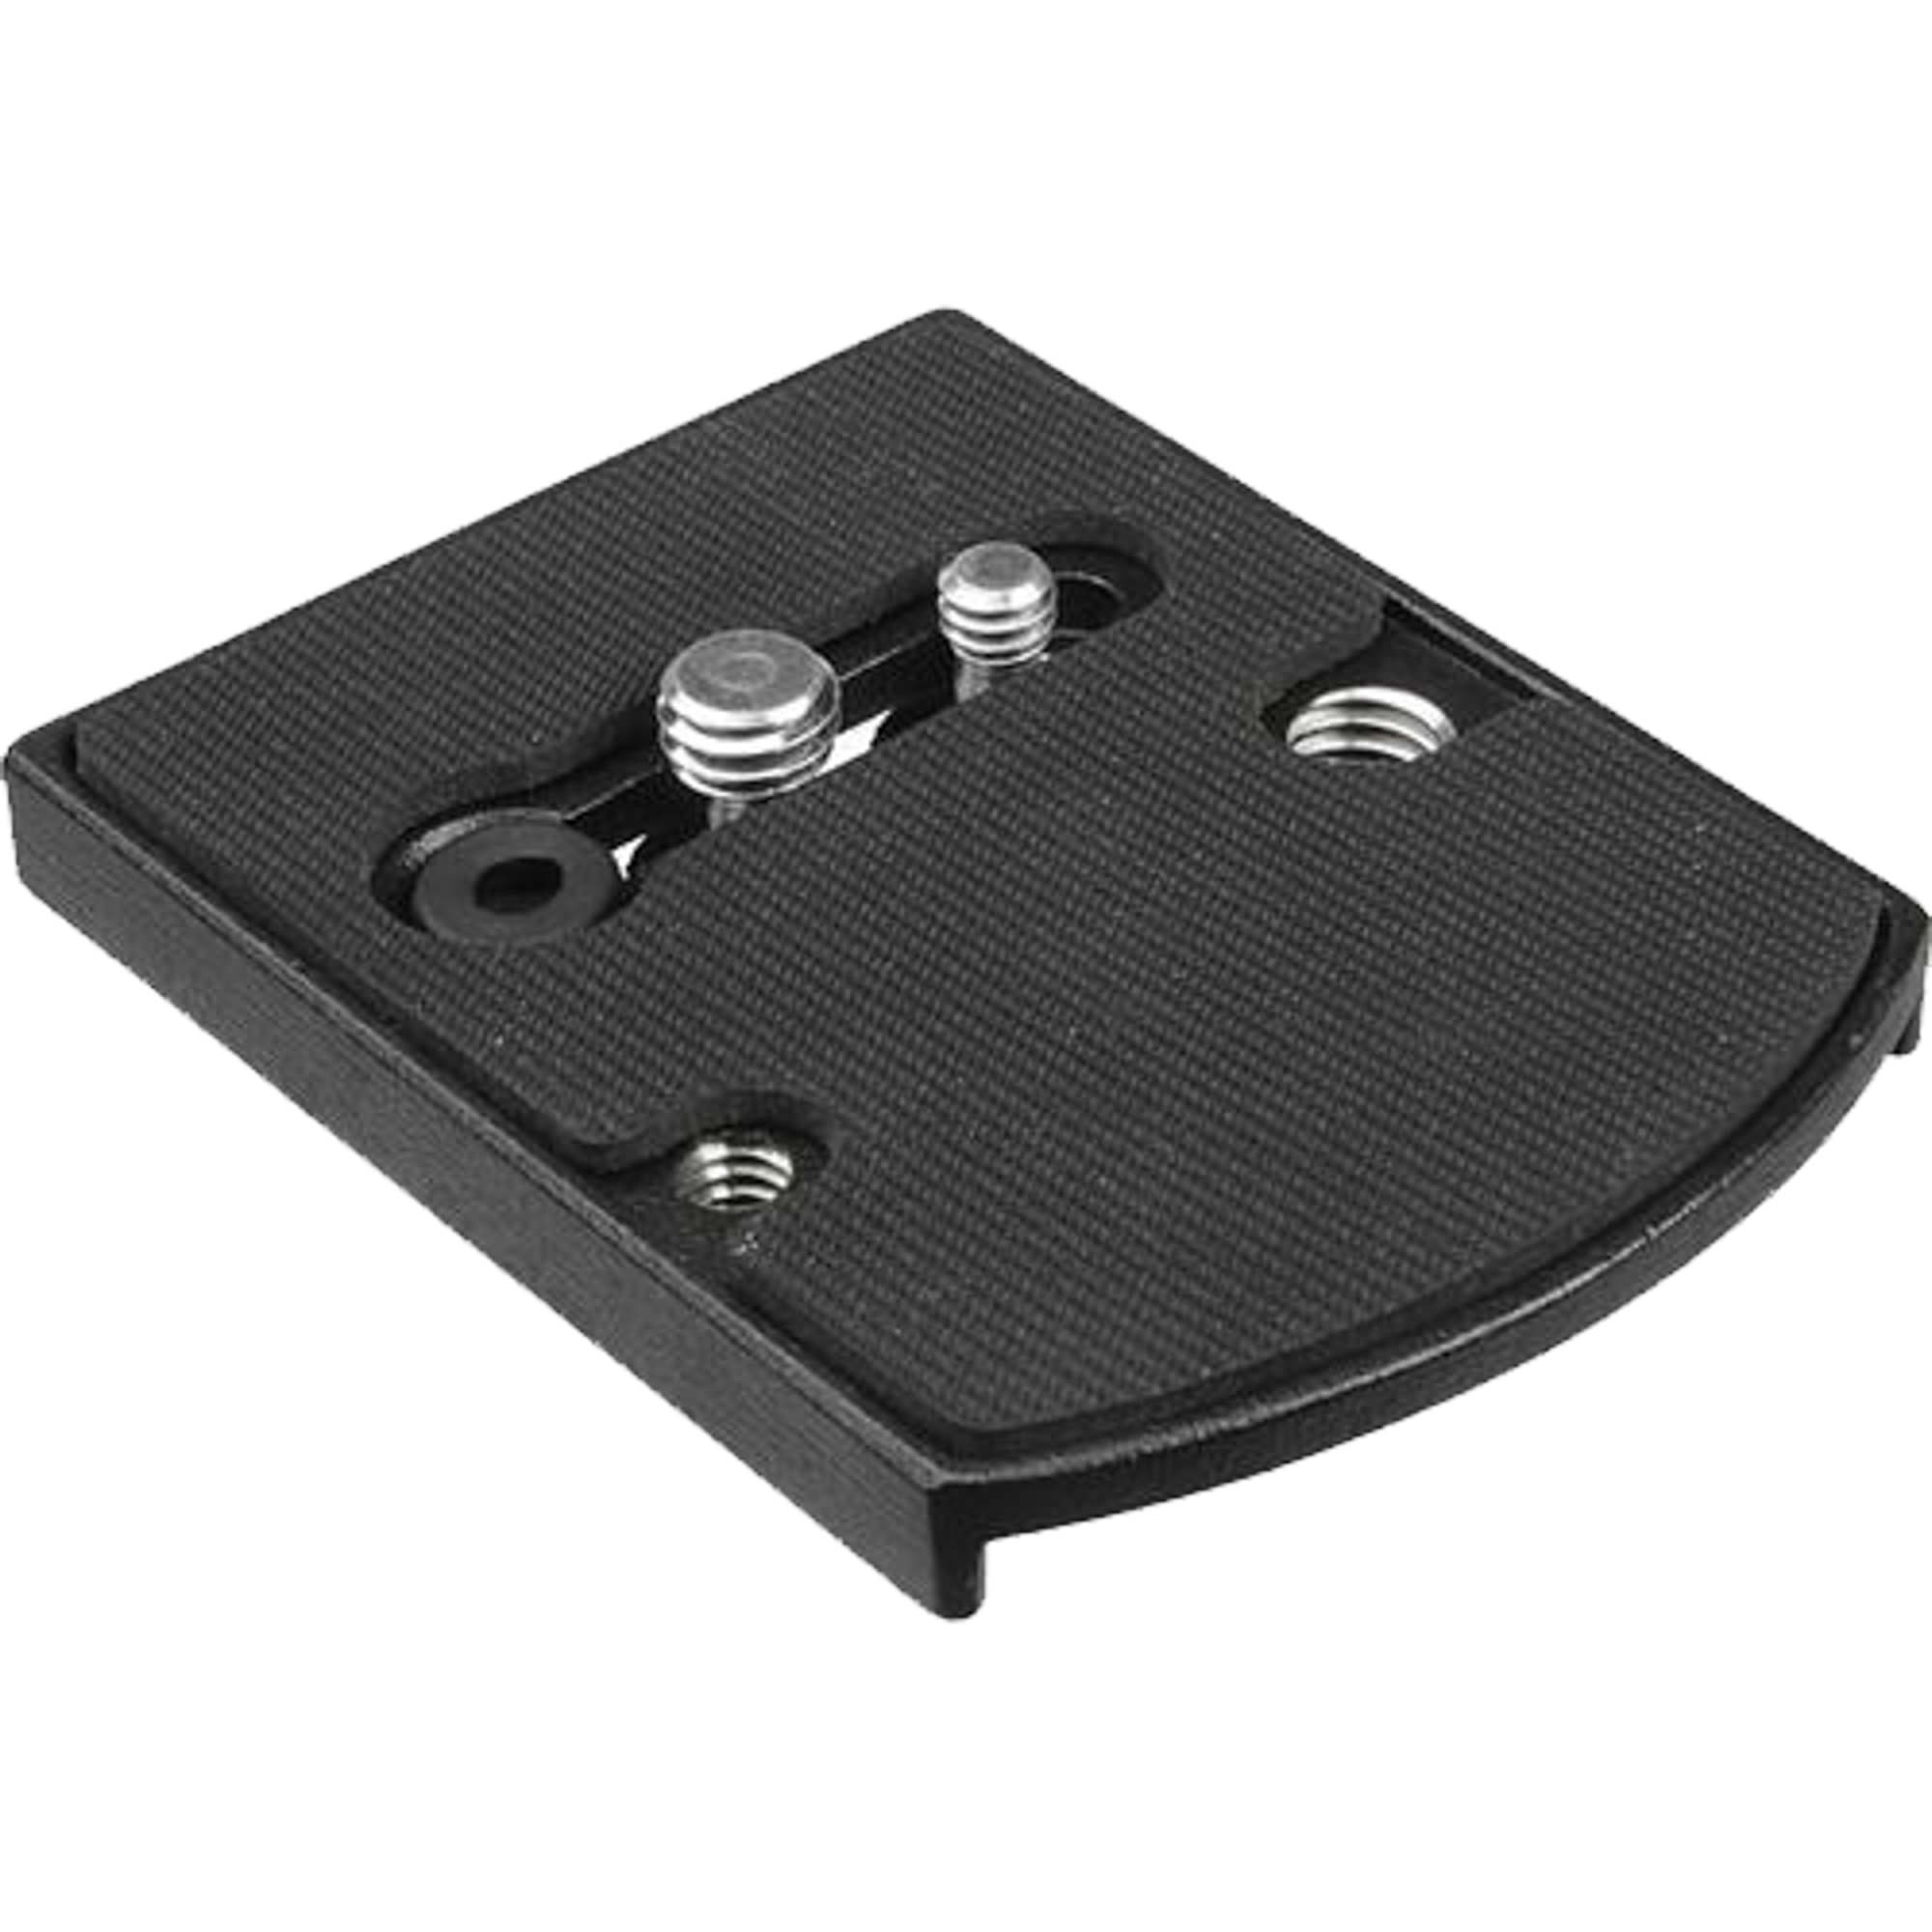 Manfrotto 410 Plate